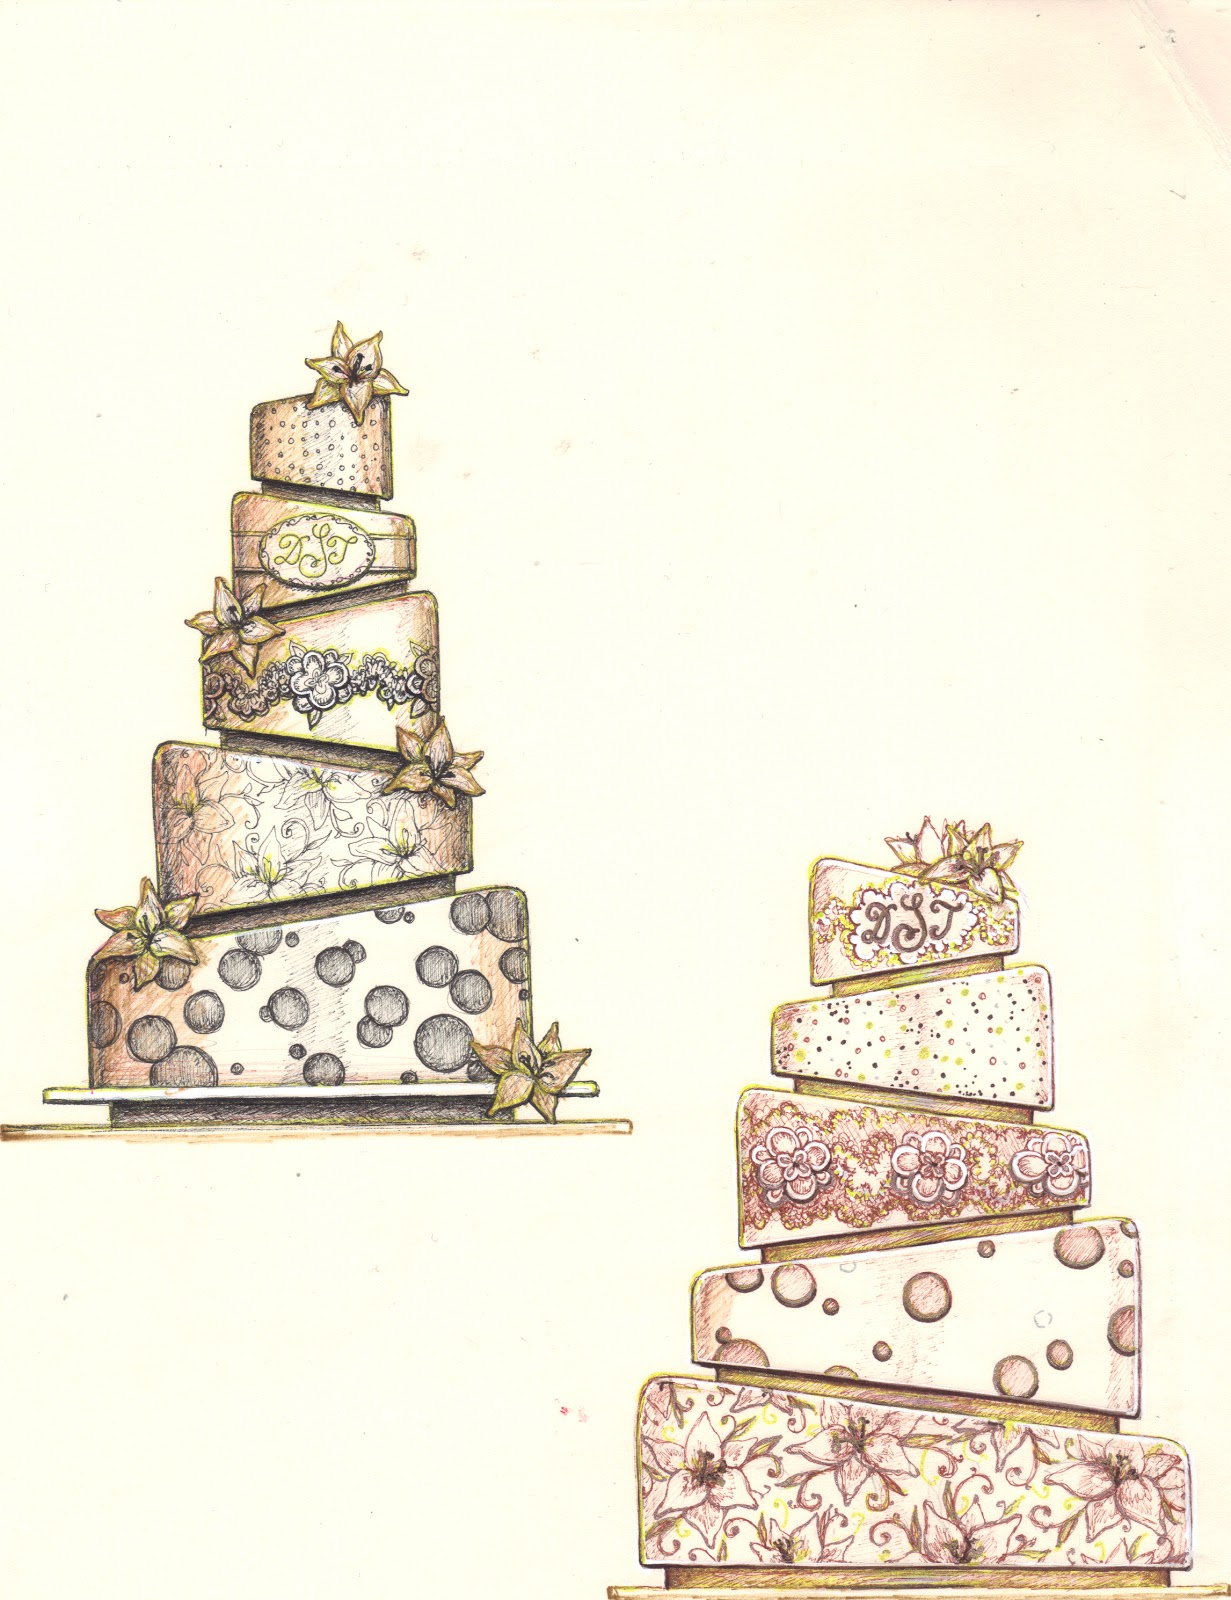 Queen Anne S Lace Cakes The Cake Artist S Journey